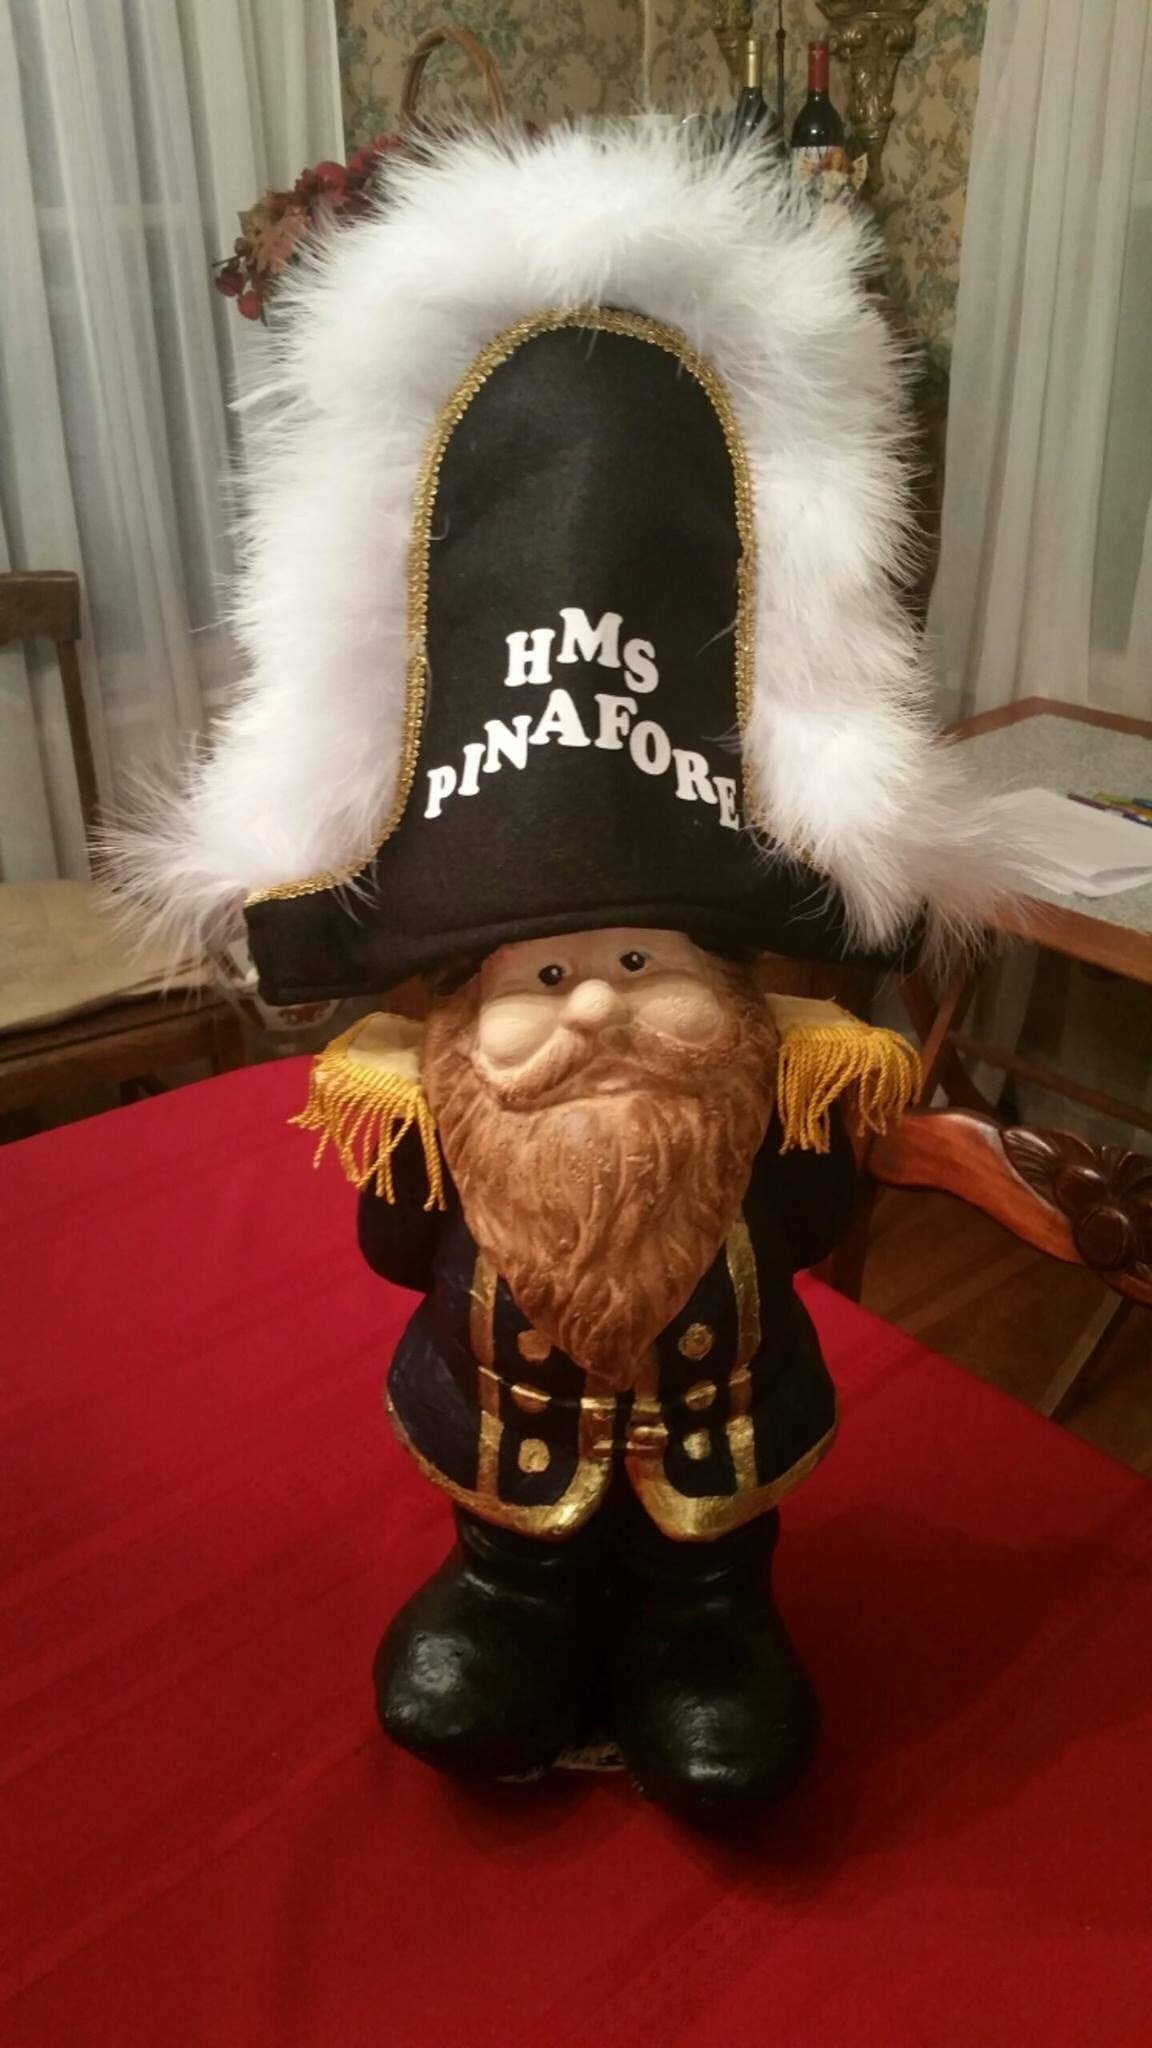 A gnome from one of the theaters shows was among the items stollen from Stageworks Northwest . (Stageworks Northwest)